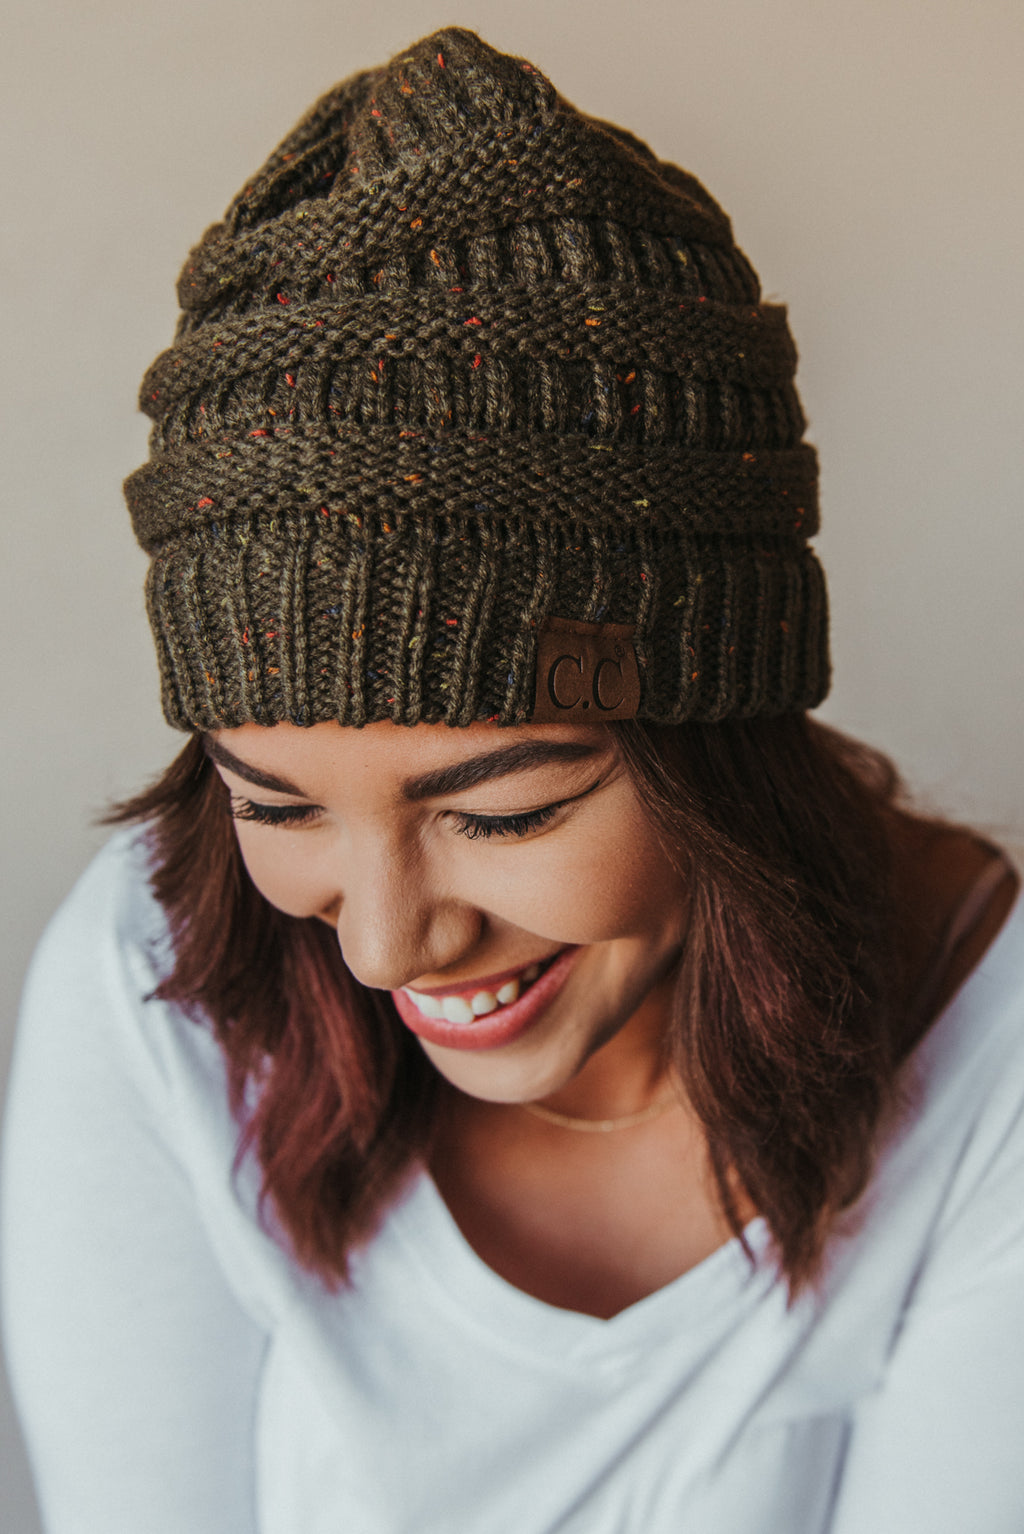 C.C Confetti Beanie ~ Olive - J. Lilly's Boutique